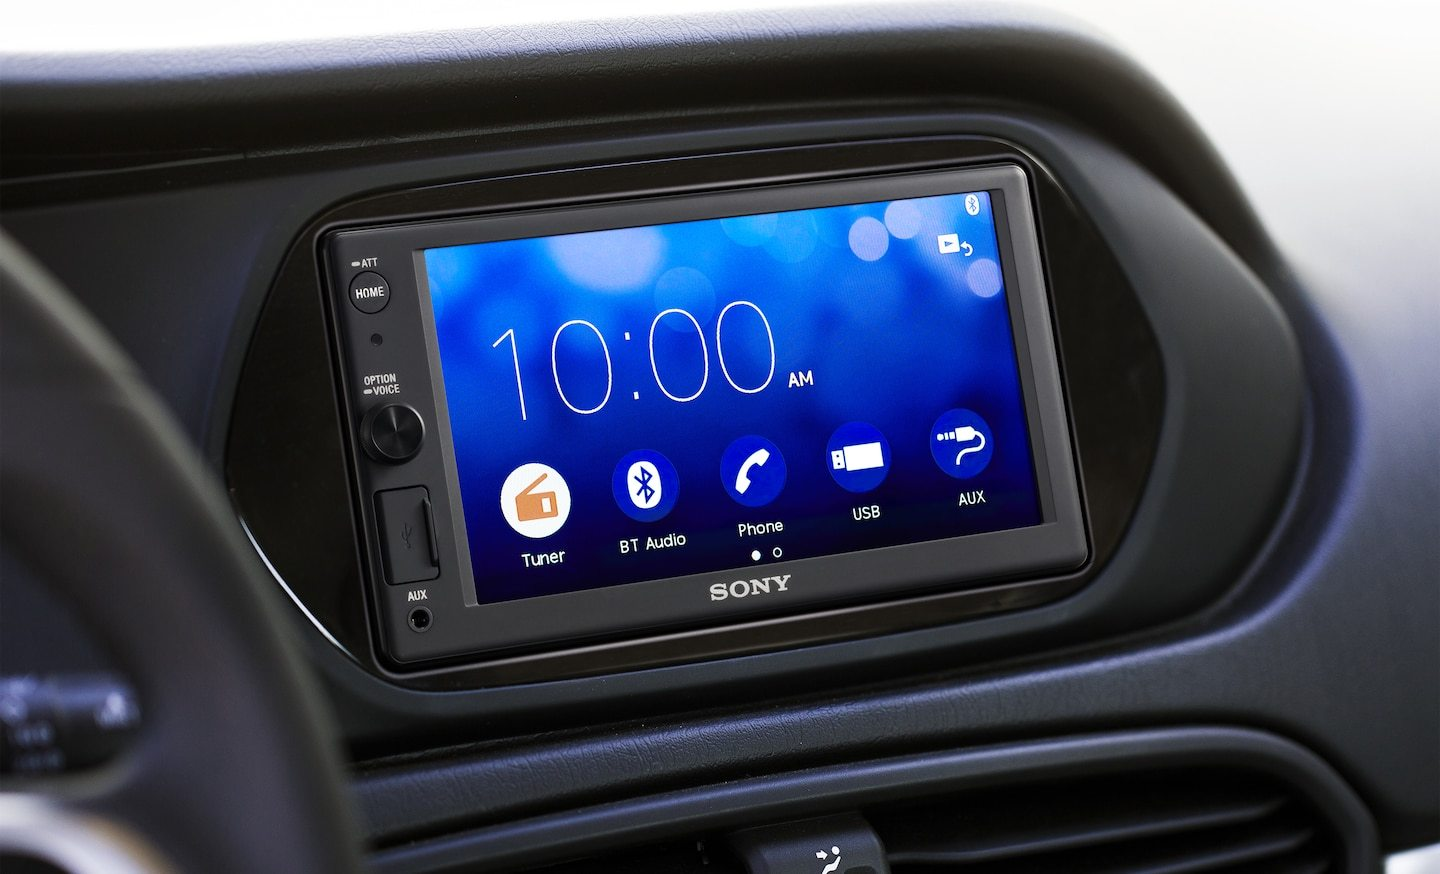 Sony XAV-AX1000 double DIN headunit from JC Installs in Christchurch